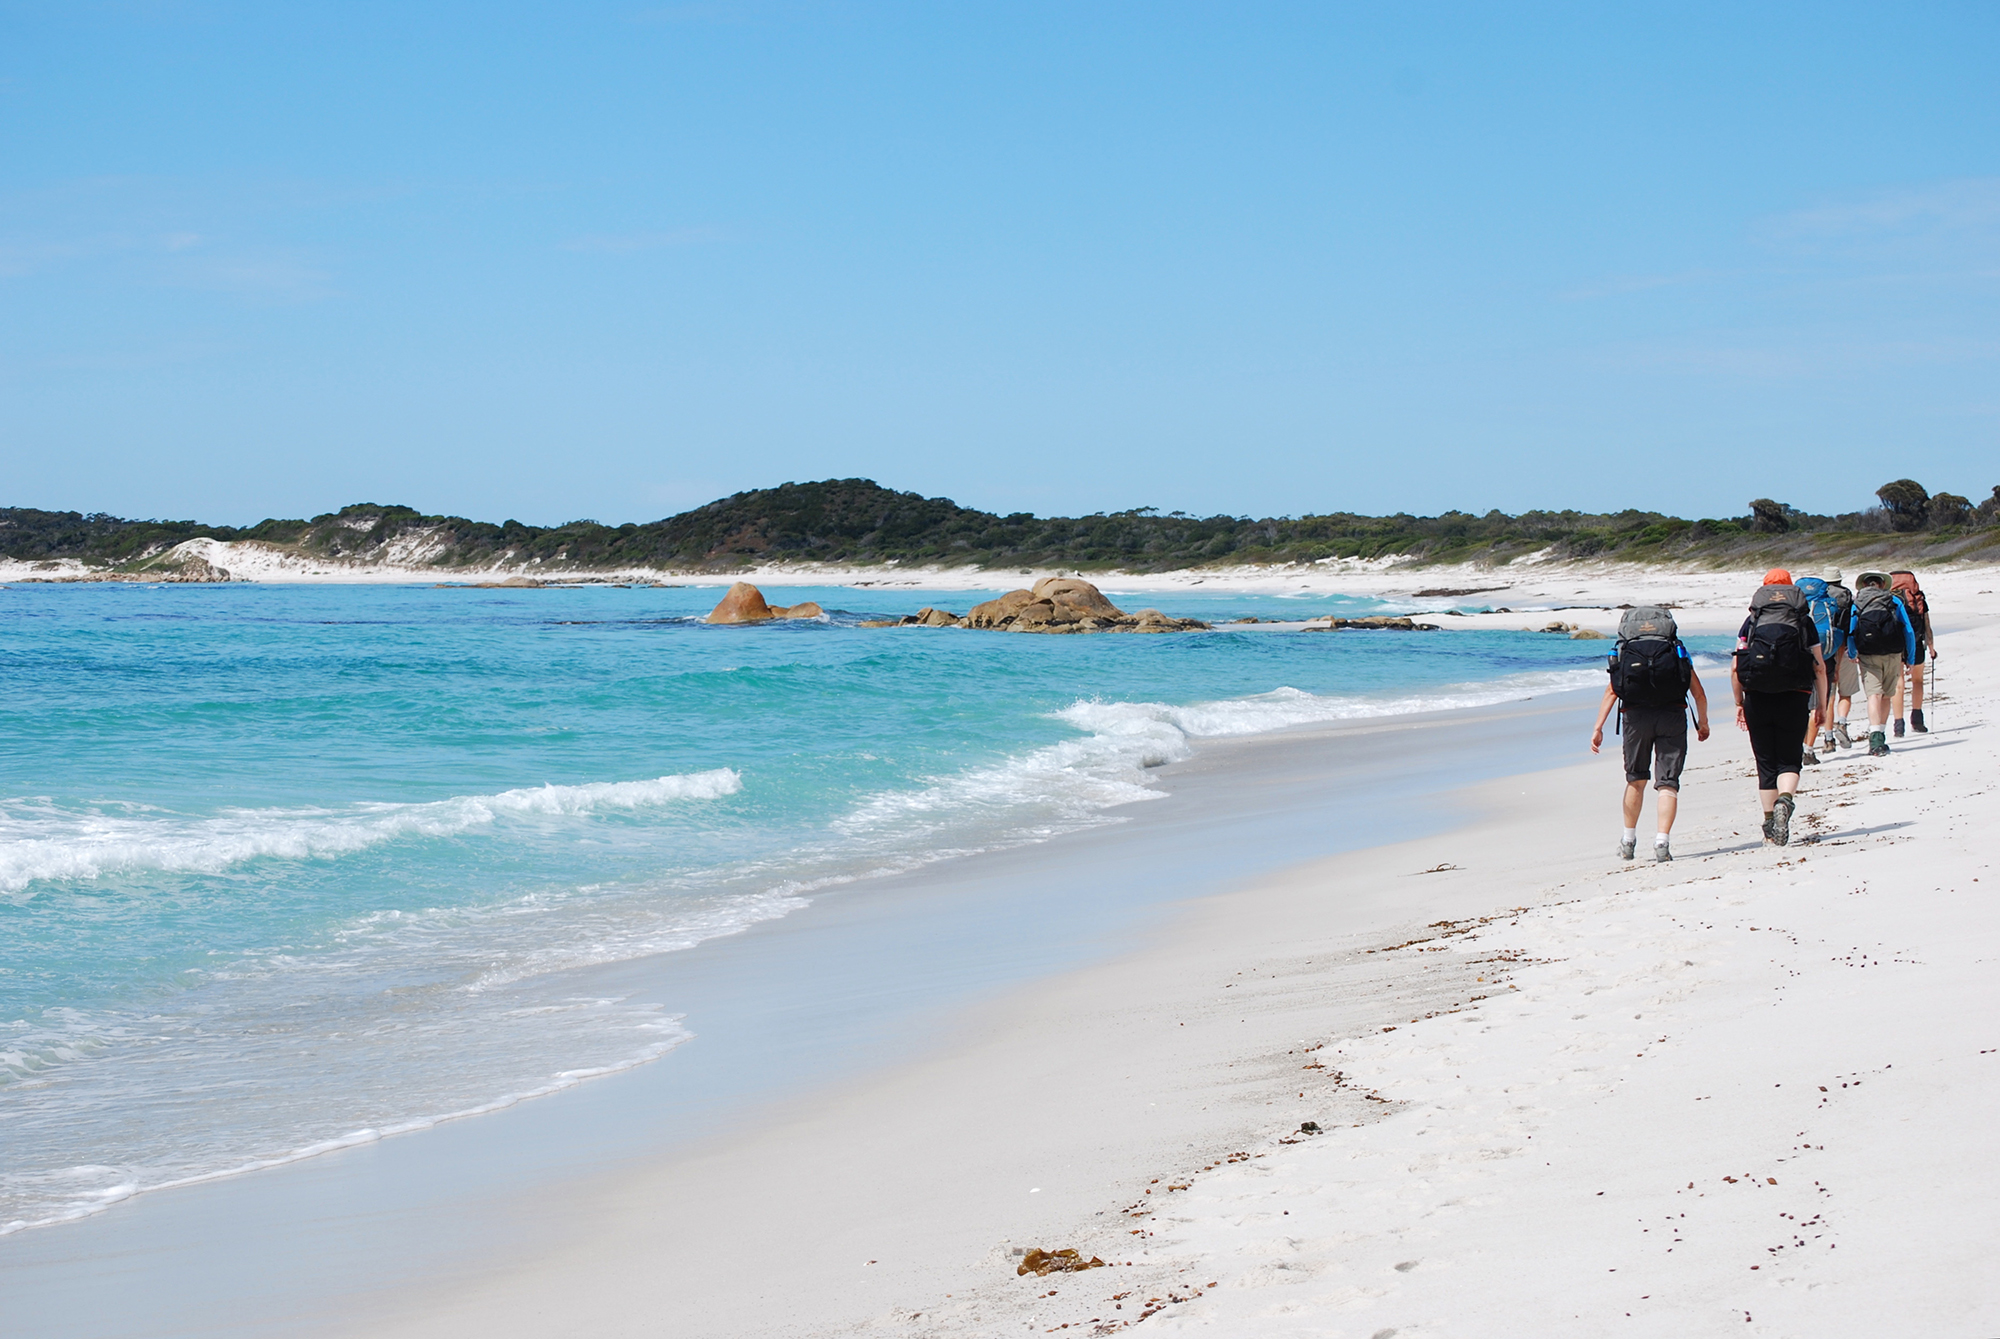 Bay of Fires tour participants walk along the beach on a sunny day